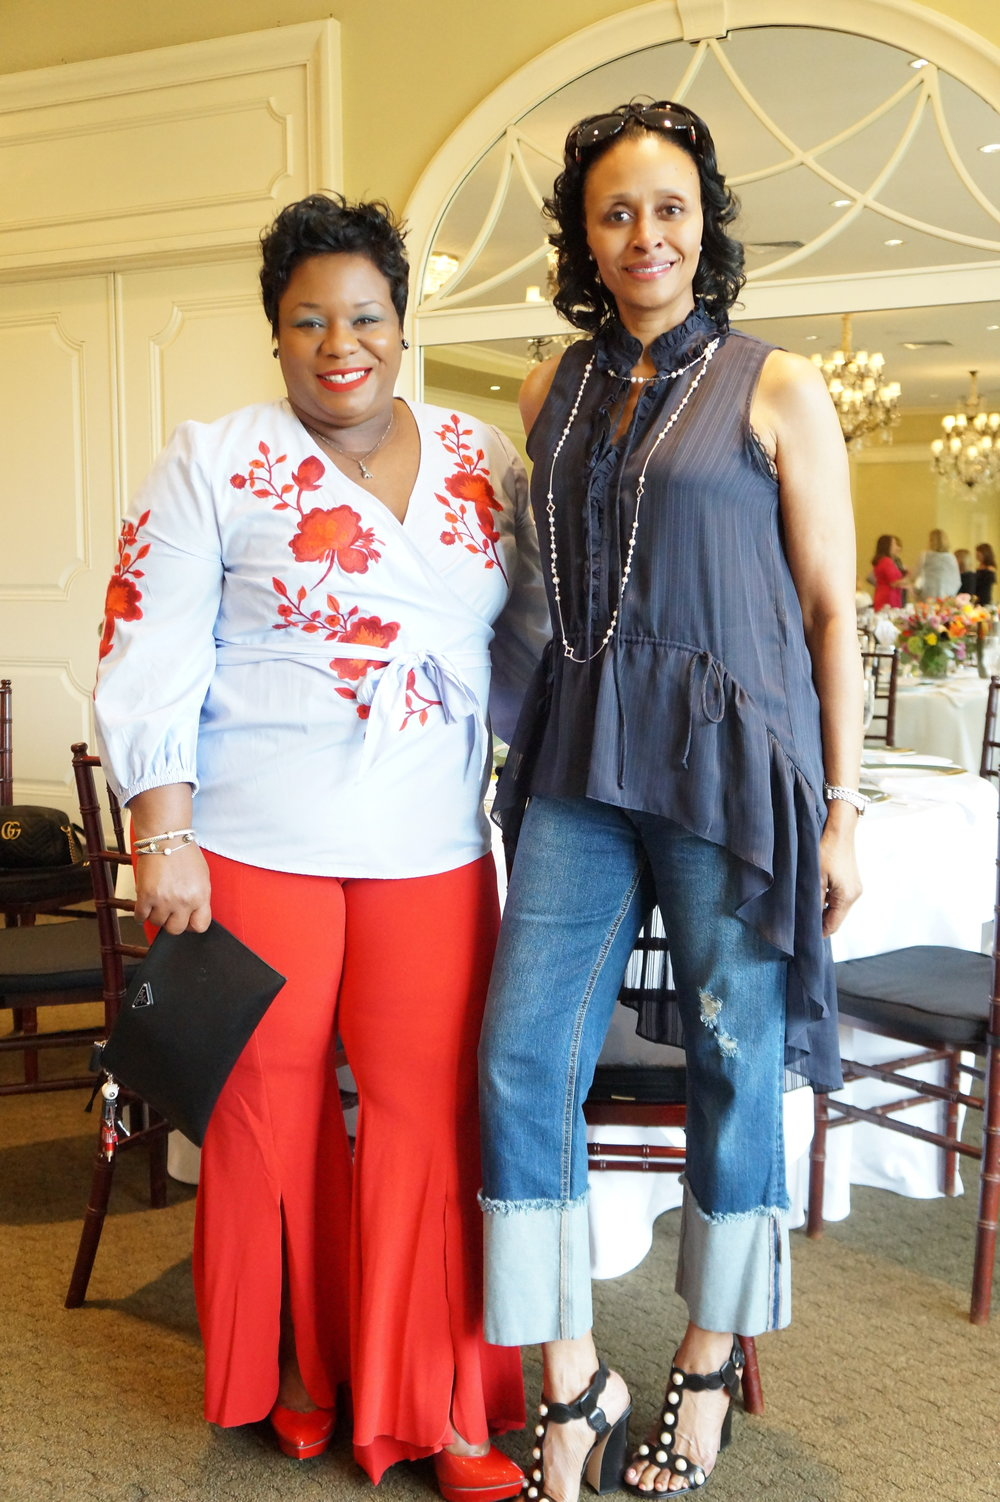 Andrea Fenise Memphis Fashion Blogger shares #memphisfashionweek headliner luncheon with Rachel Roy